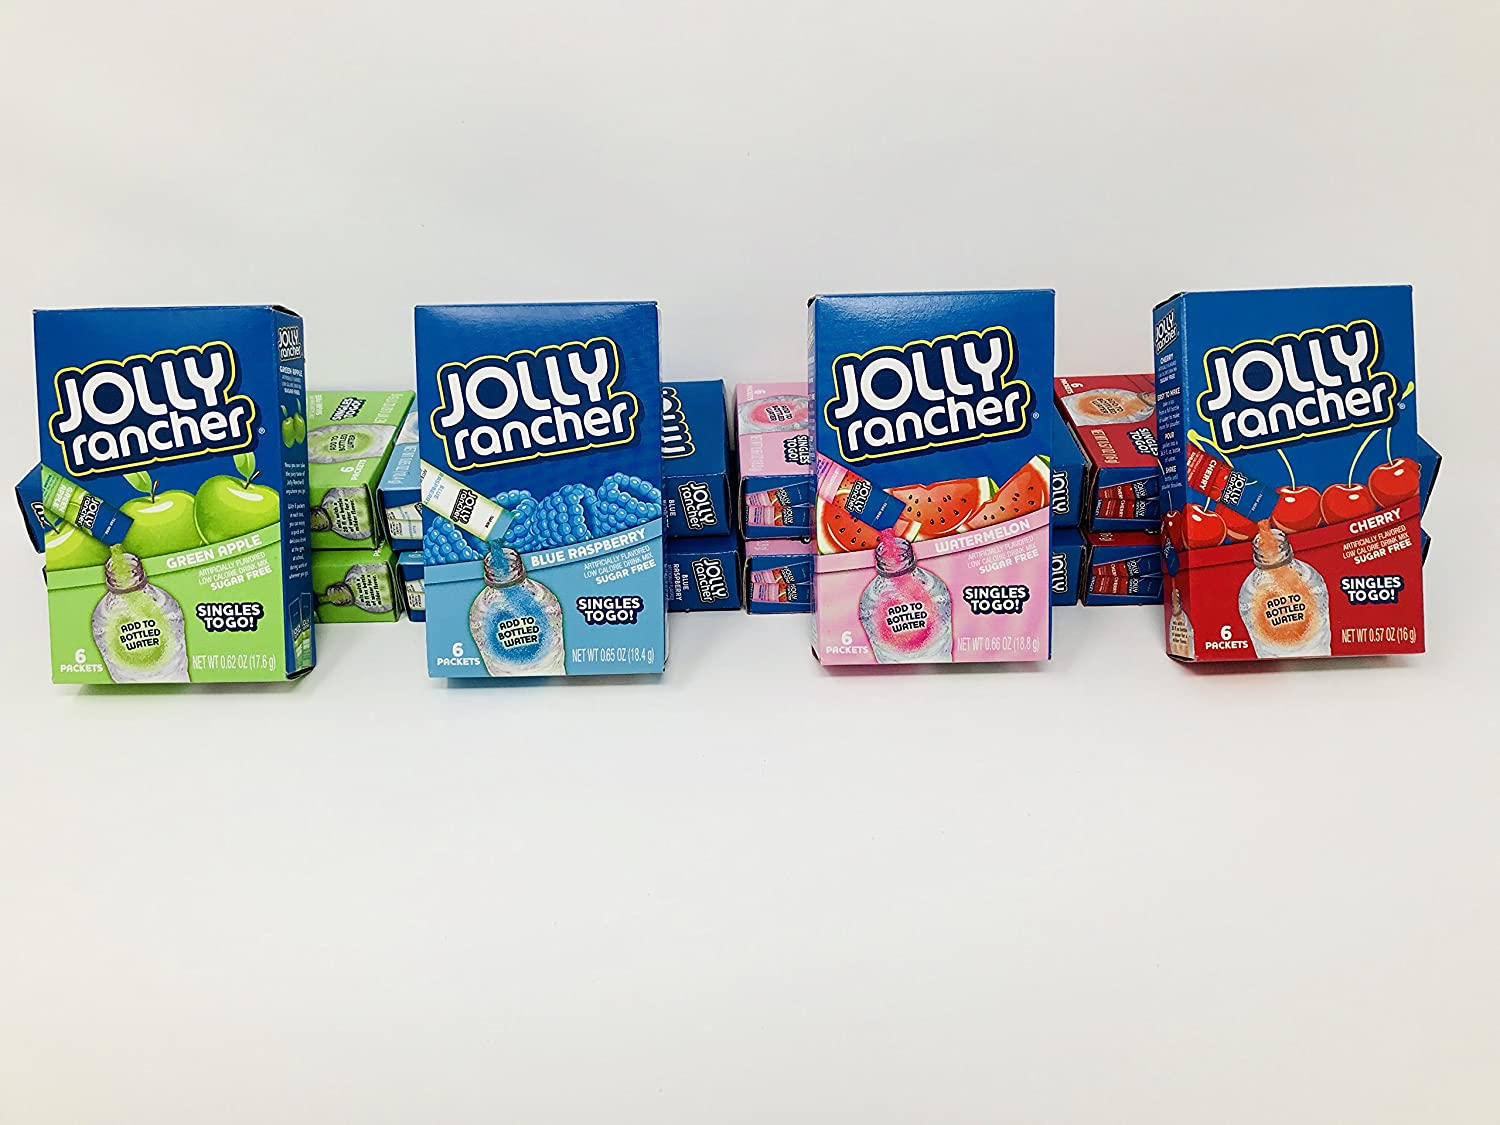 Singles to Go! Jolly Rancher 4-Flavor Mega-Pack with 12 Boxes (72 total servings)! Contains 3 Boxes (18 servings) of each flavor: Blue Raspberry, Cherry, Green Apple, Watermelon